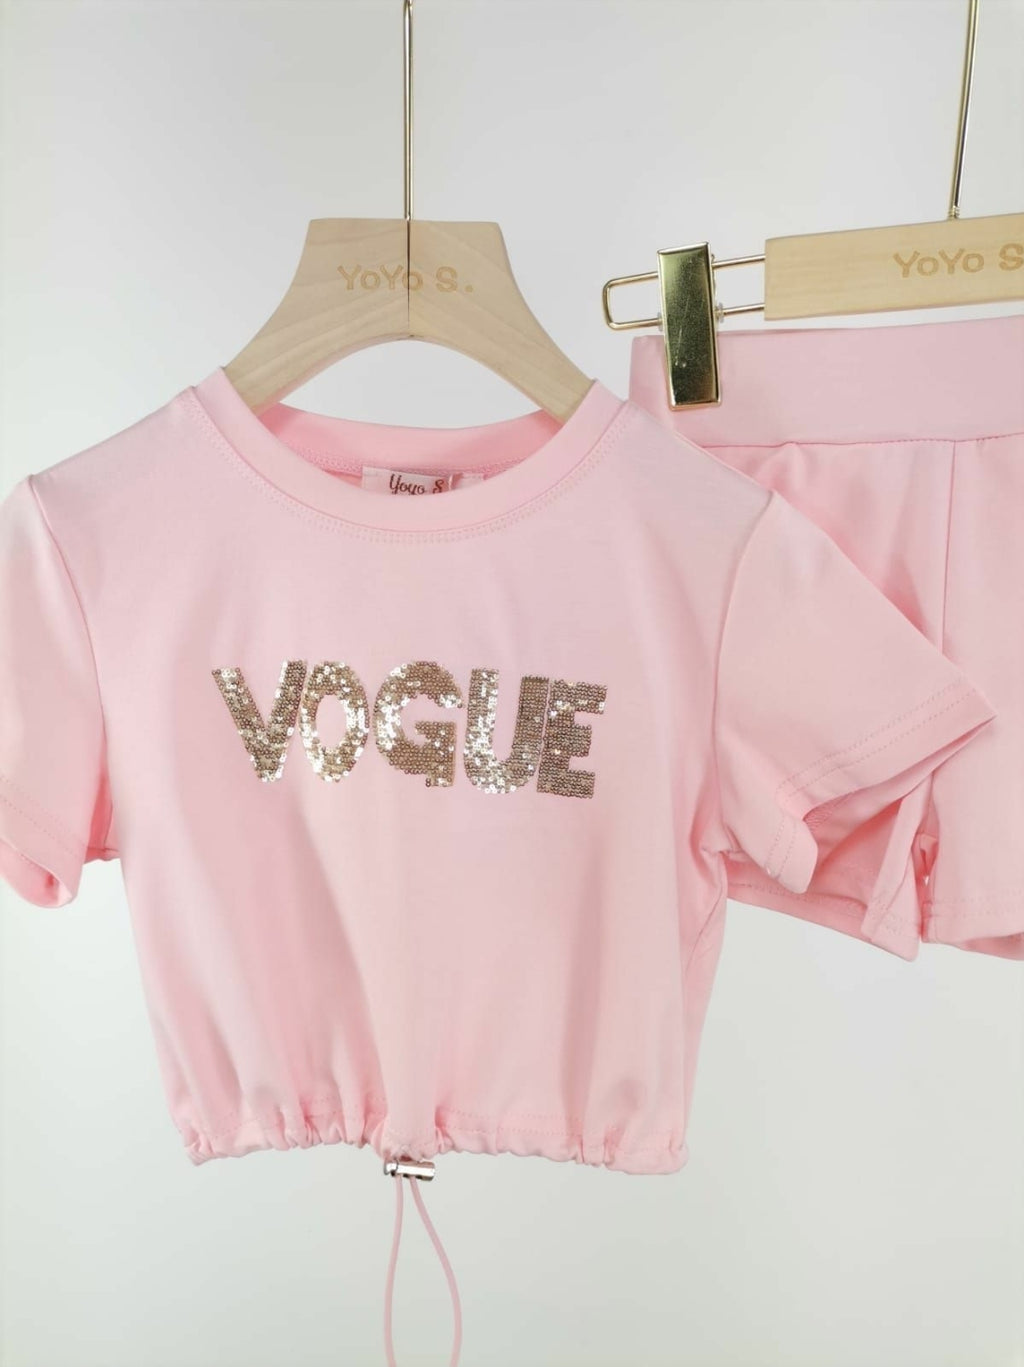 Vogue set rose